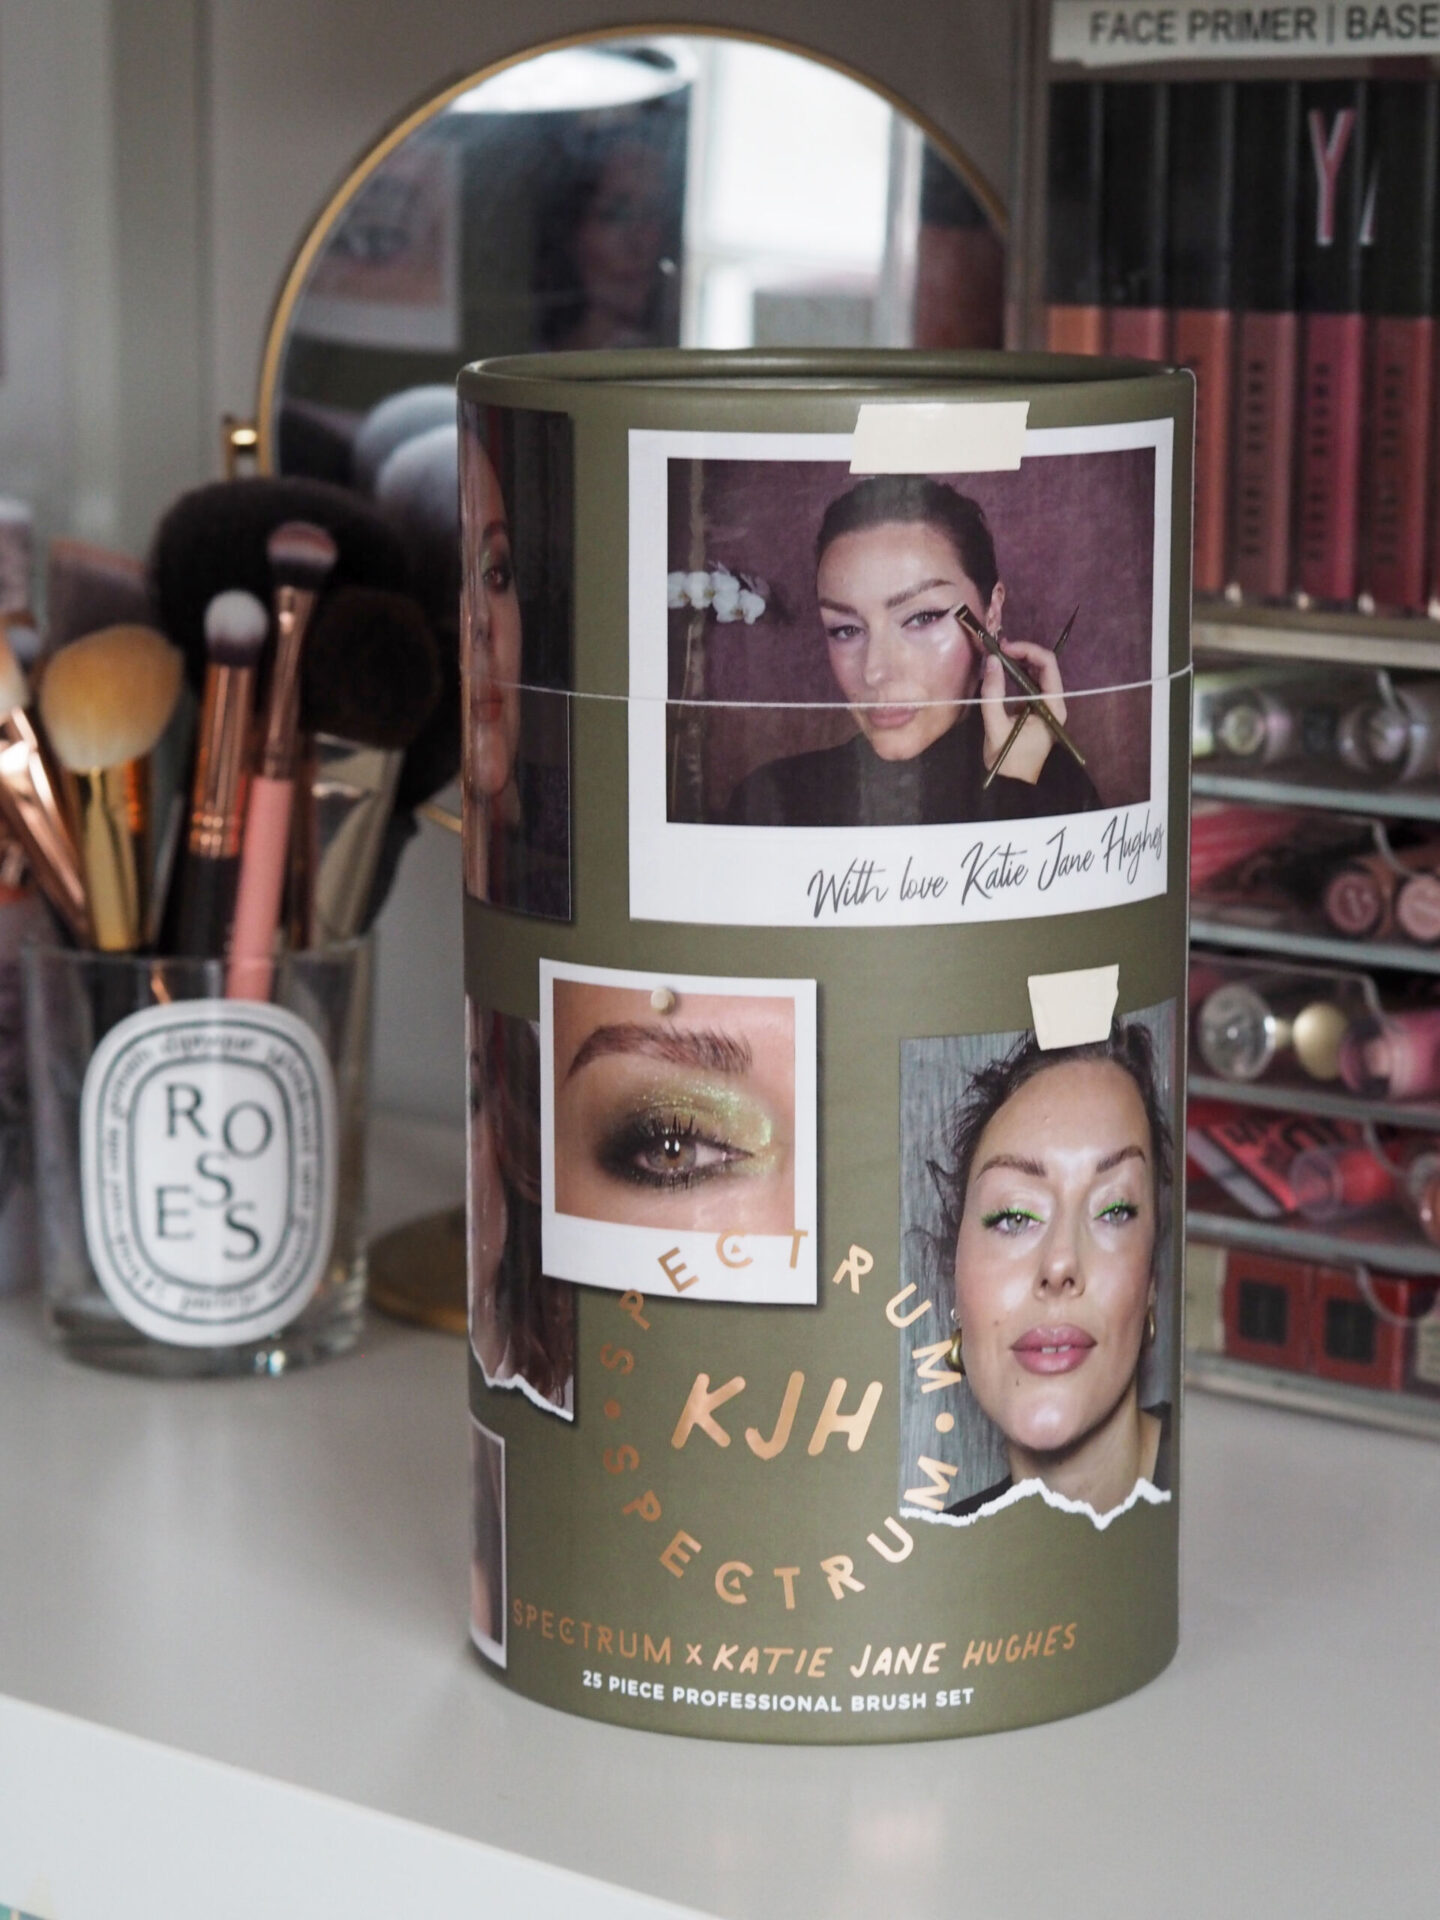 Spectrum Katie Jane Hughes Brush Collection review